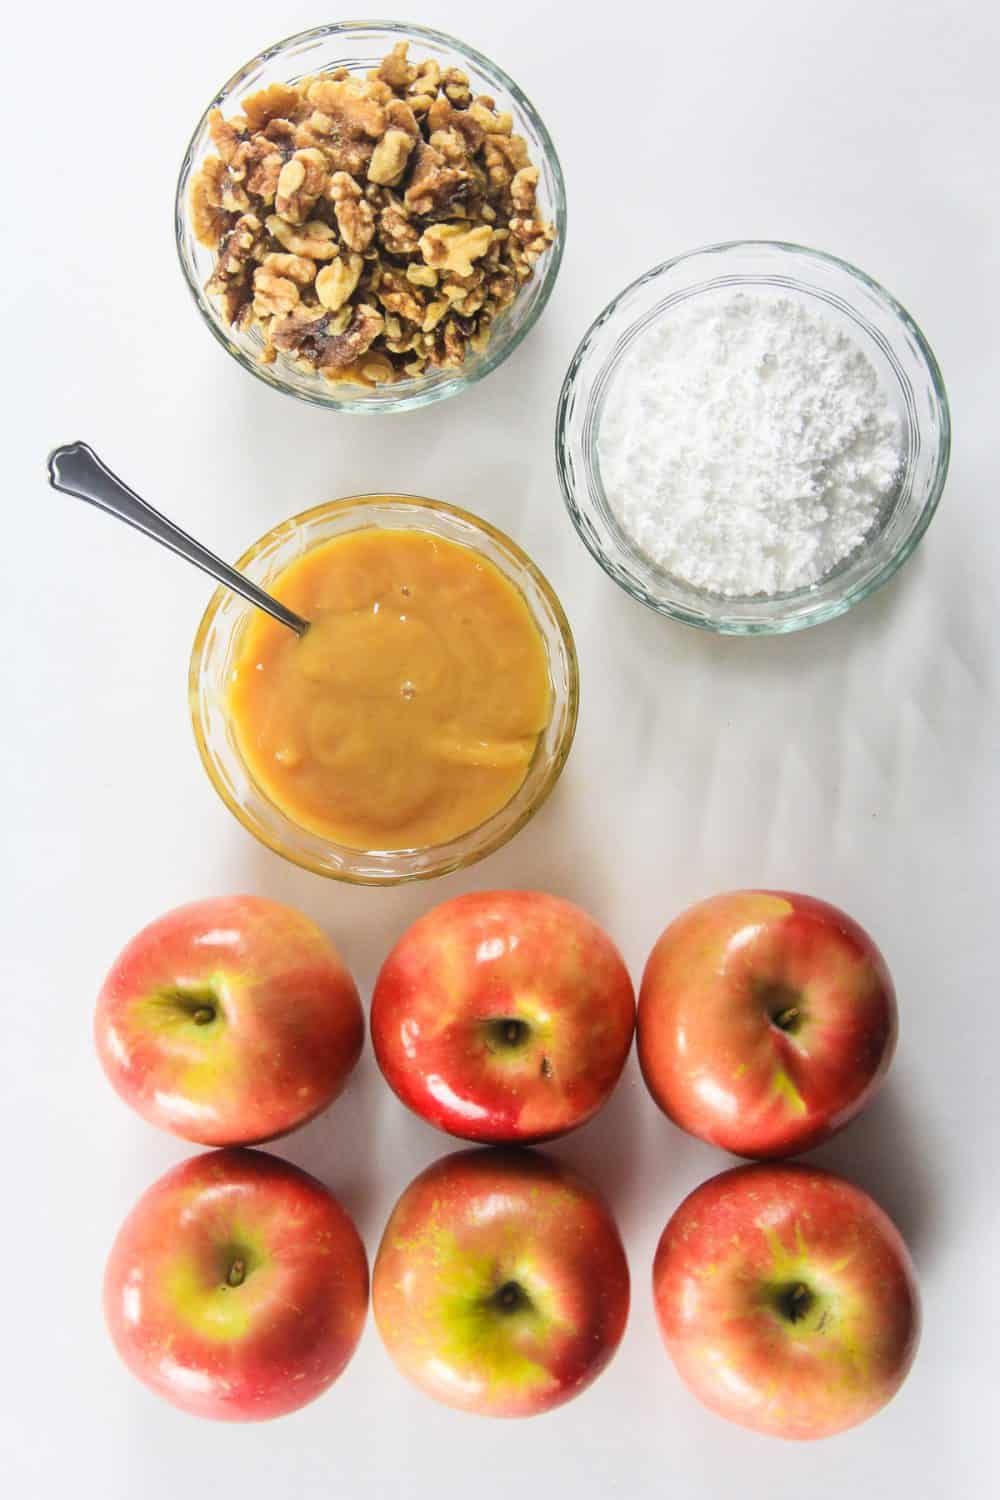 walnuts, powdered sugar, sweetened condensed milk, and apples. Ingredients for baked apples.